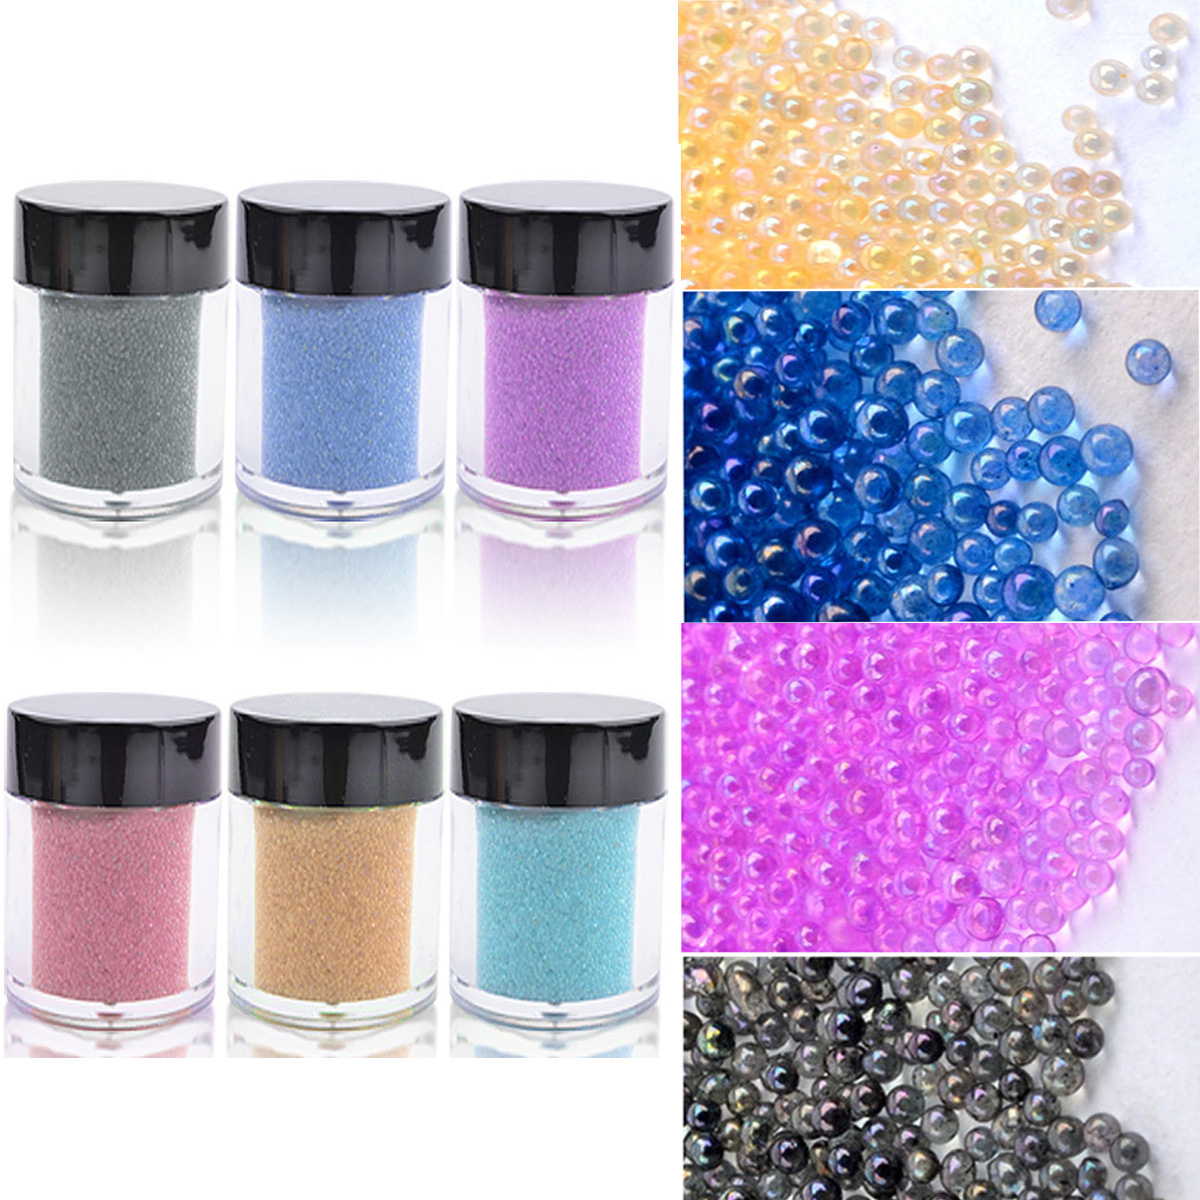 Micro beads for crafting - Nail Glass Bead Glitter Wine Glass Craft Shinny Iridescent Micro Beads Dots Pots Balls Nail Art Gels Nail Art Floristry Dust 10g